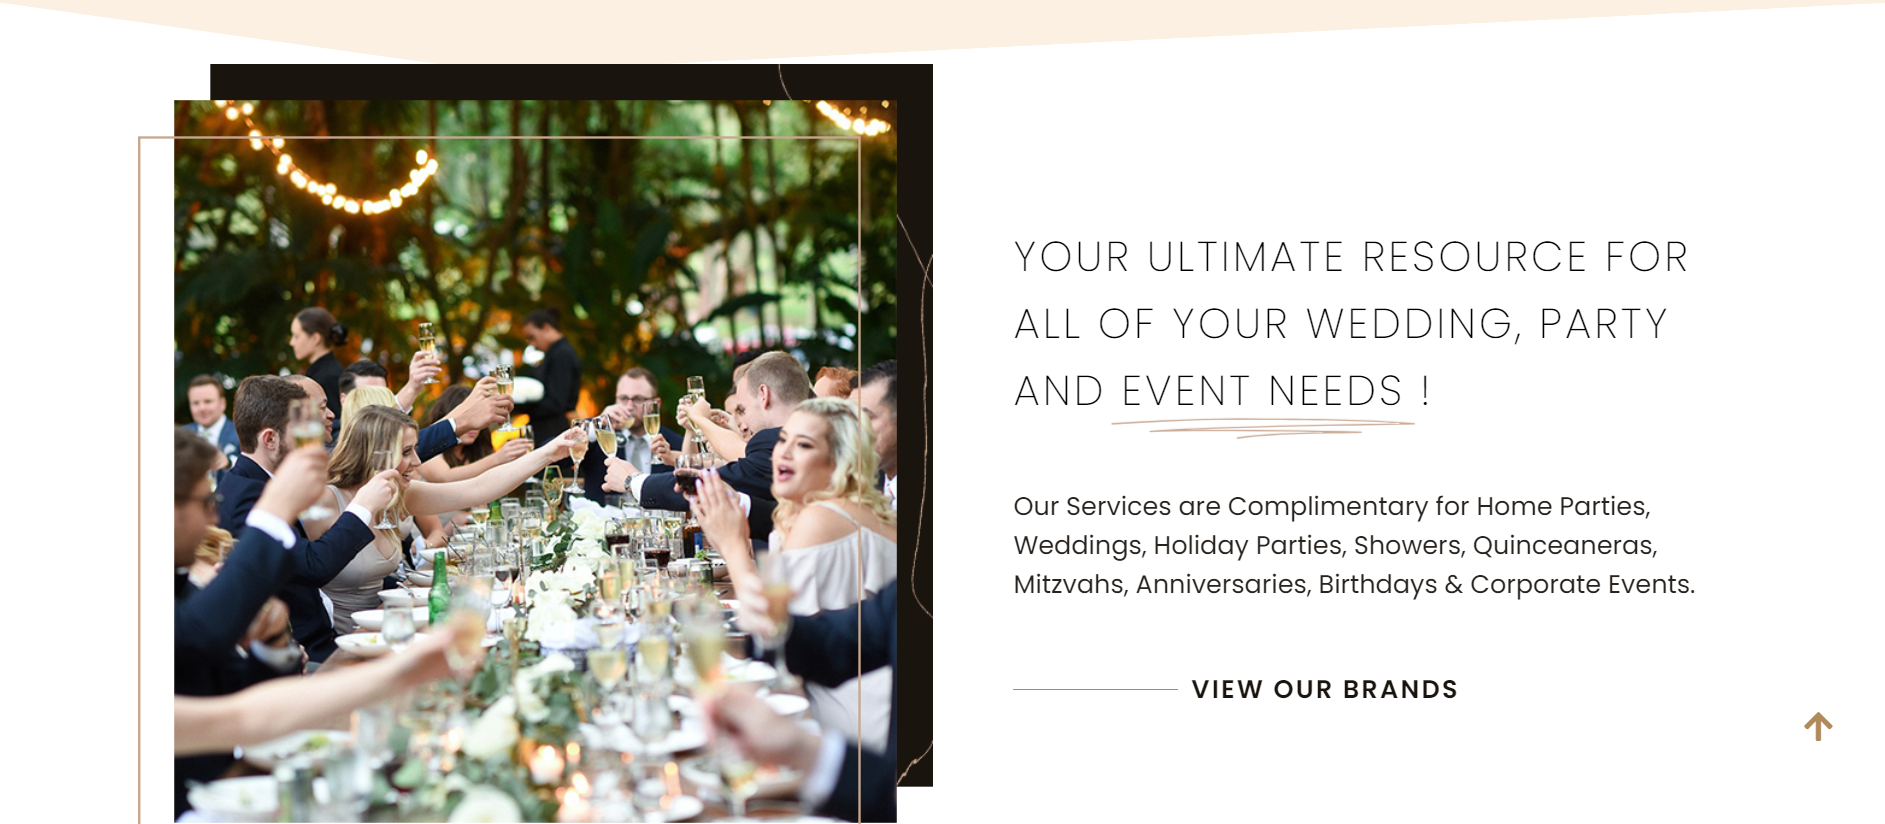 Bill Hansen Catering and Event Production in Miami